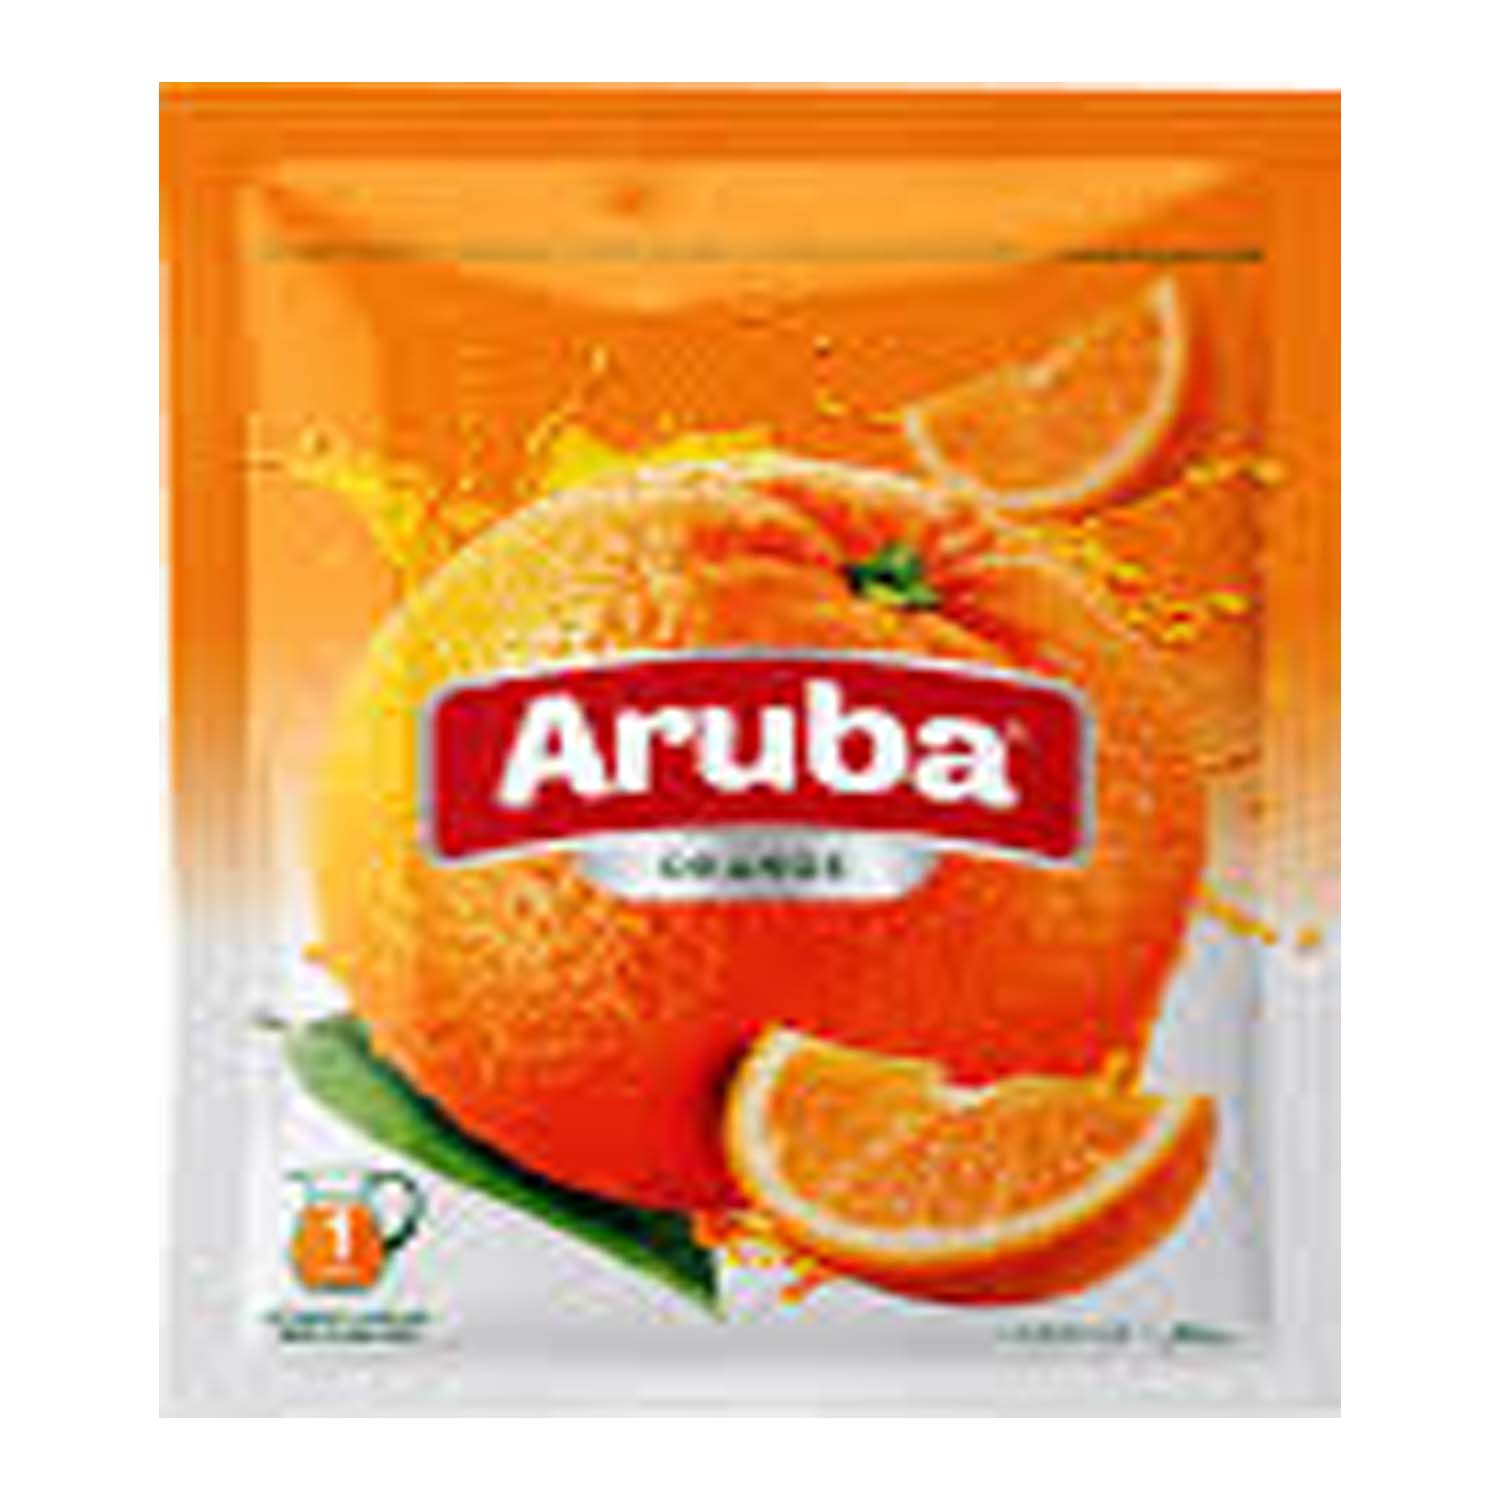 Aruba Concentrate Juice - Orange	30g